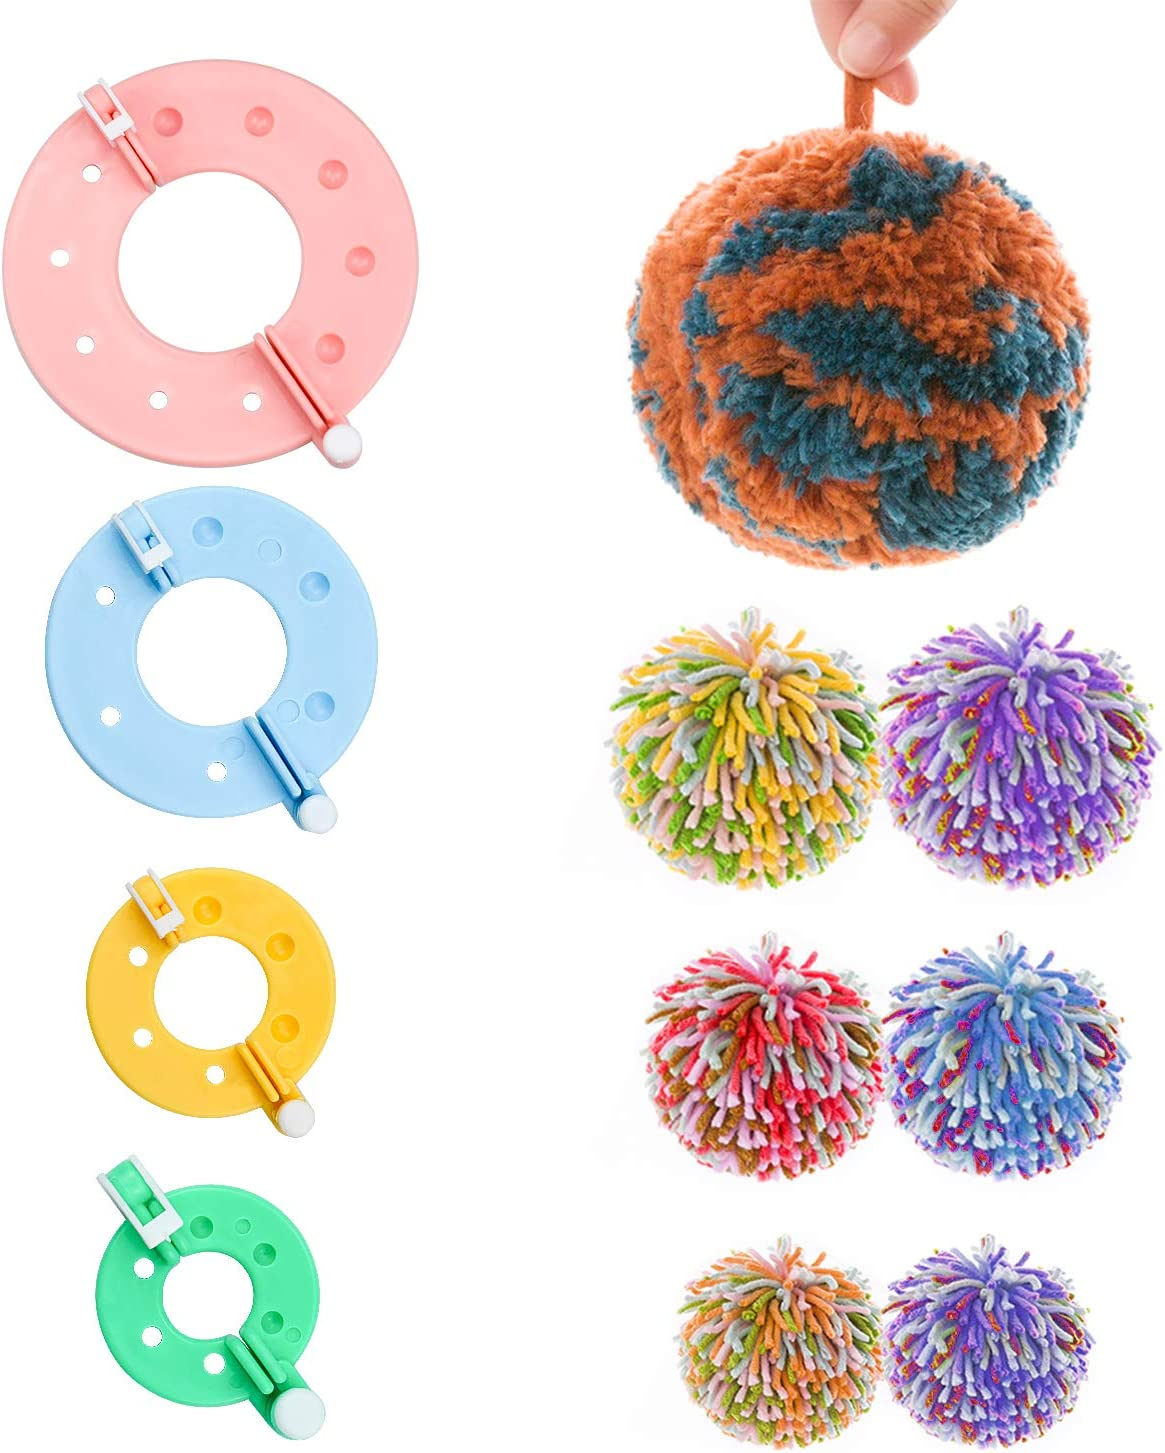 1.3//2//2.8//3.5 inches Gifts Kids and Adult of Fluff Ball Weaver for DIY Needle Crafts 9 Piece Pom Pom Makers Set 4 Size Charms Decoration